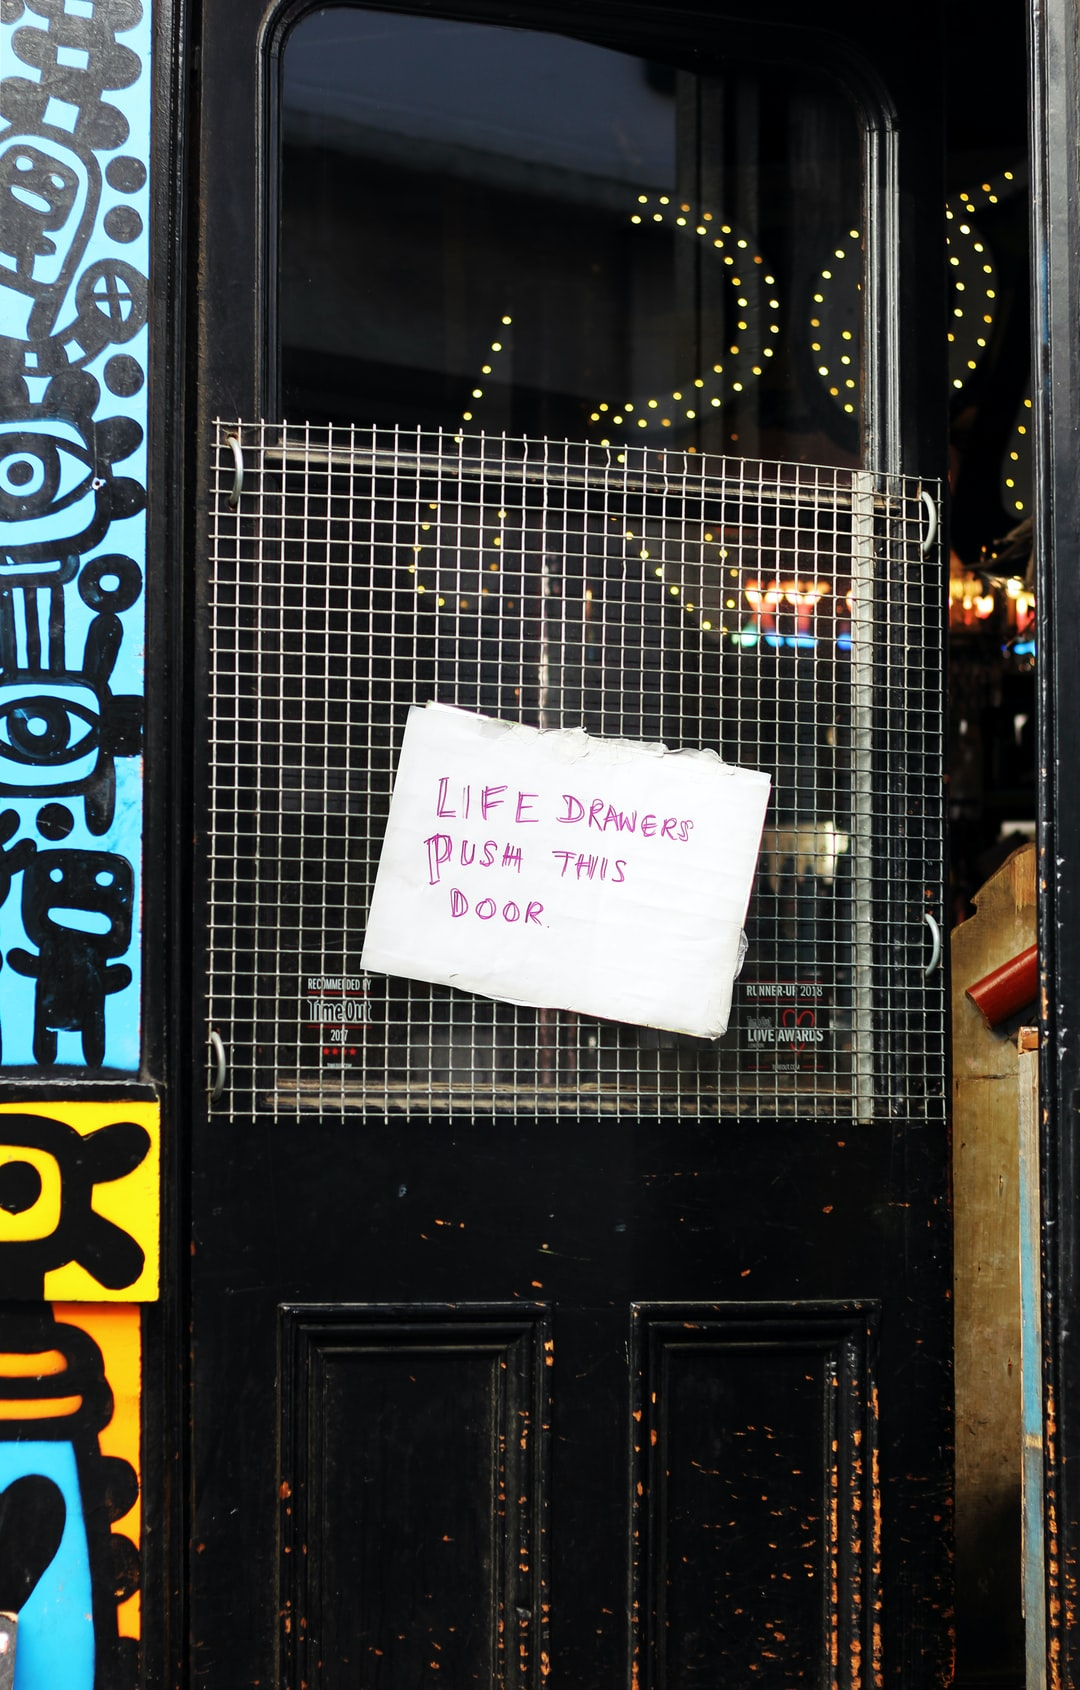 'Life drawers push this door.' The door of a Mexican Bar at Lower Marsh, London.